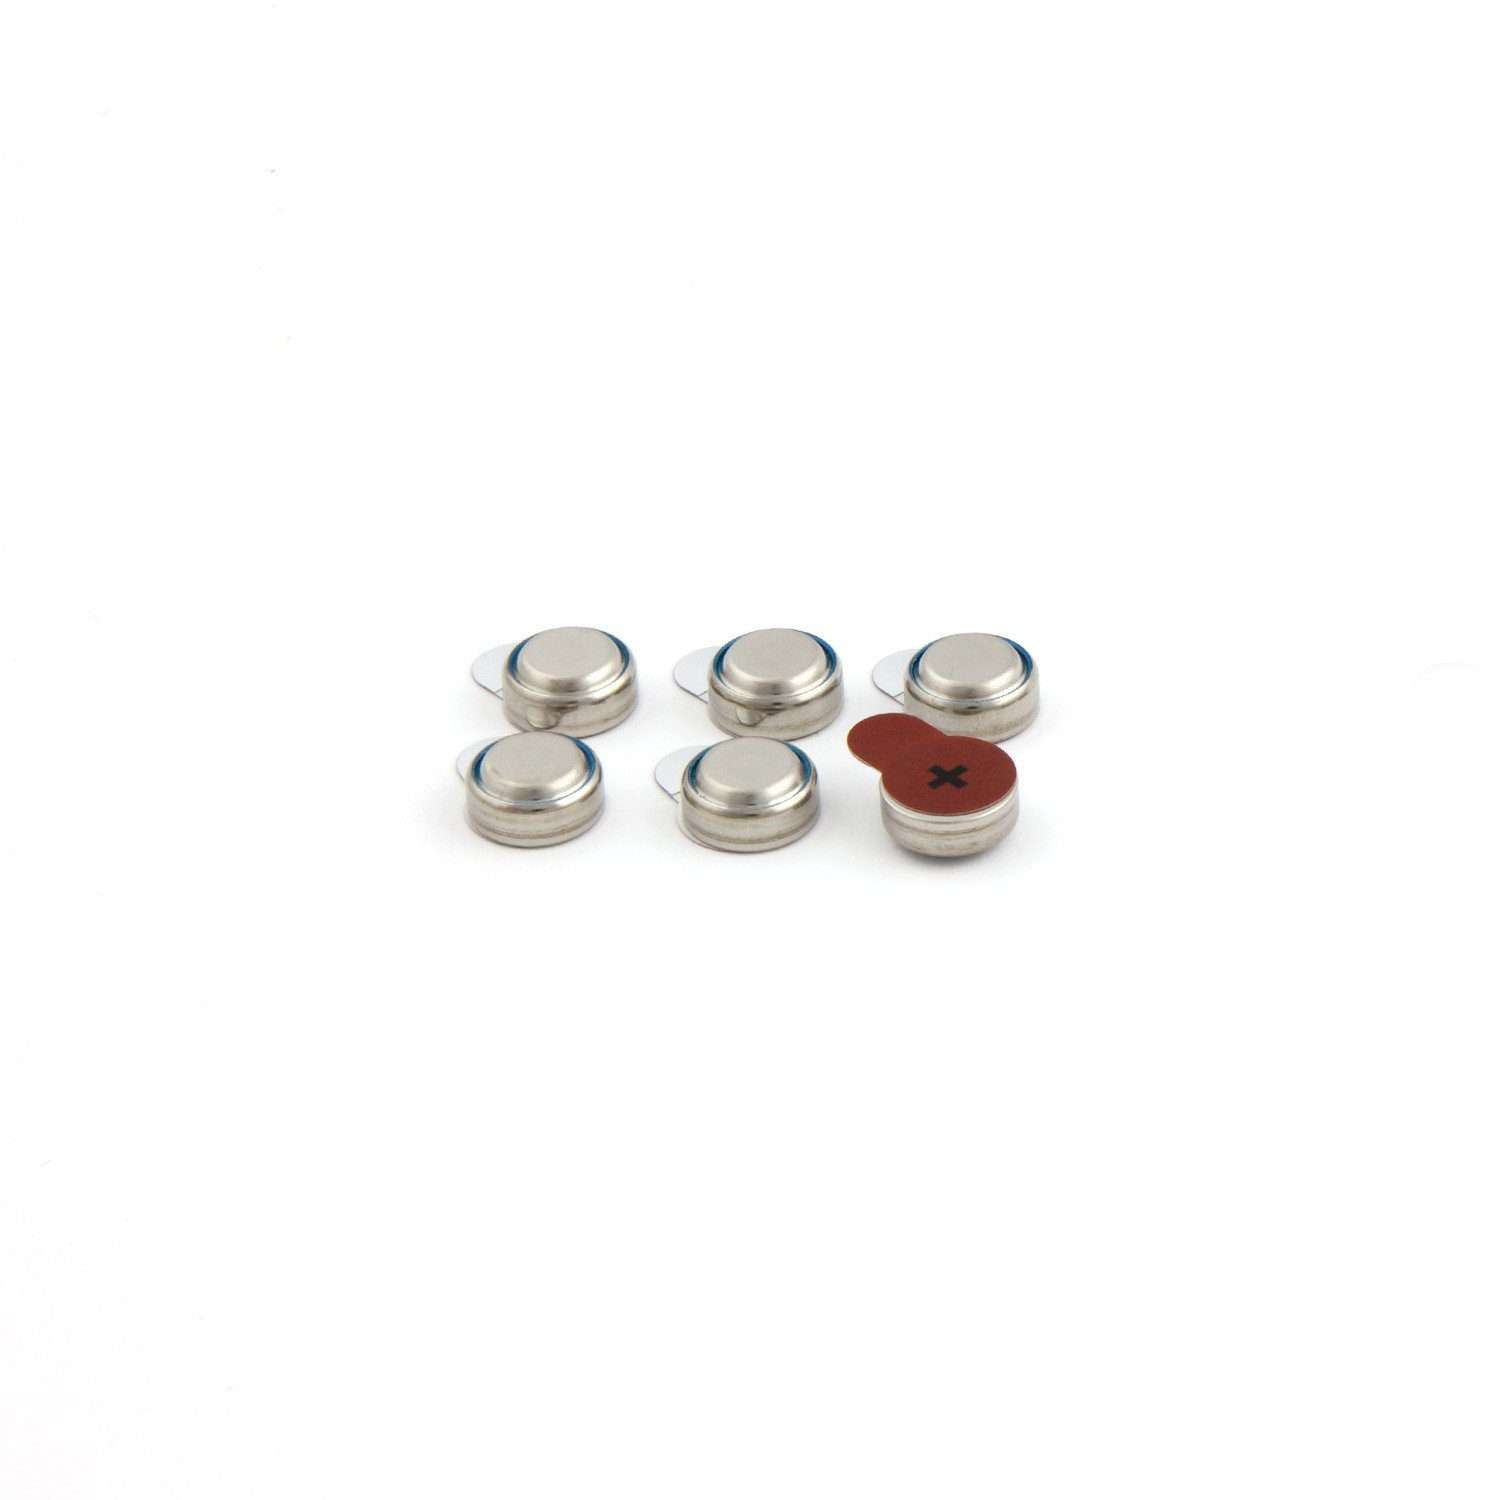 Size 312 Hearing Aid Batteries-0